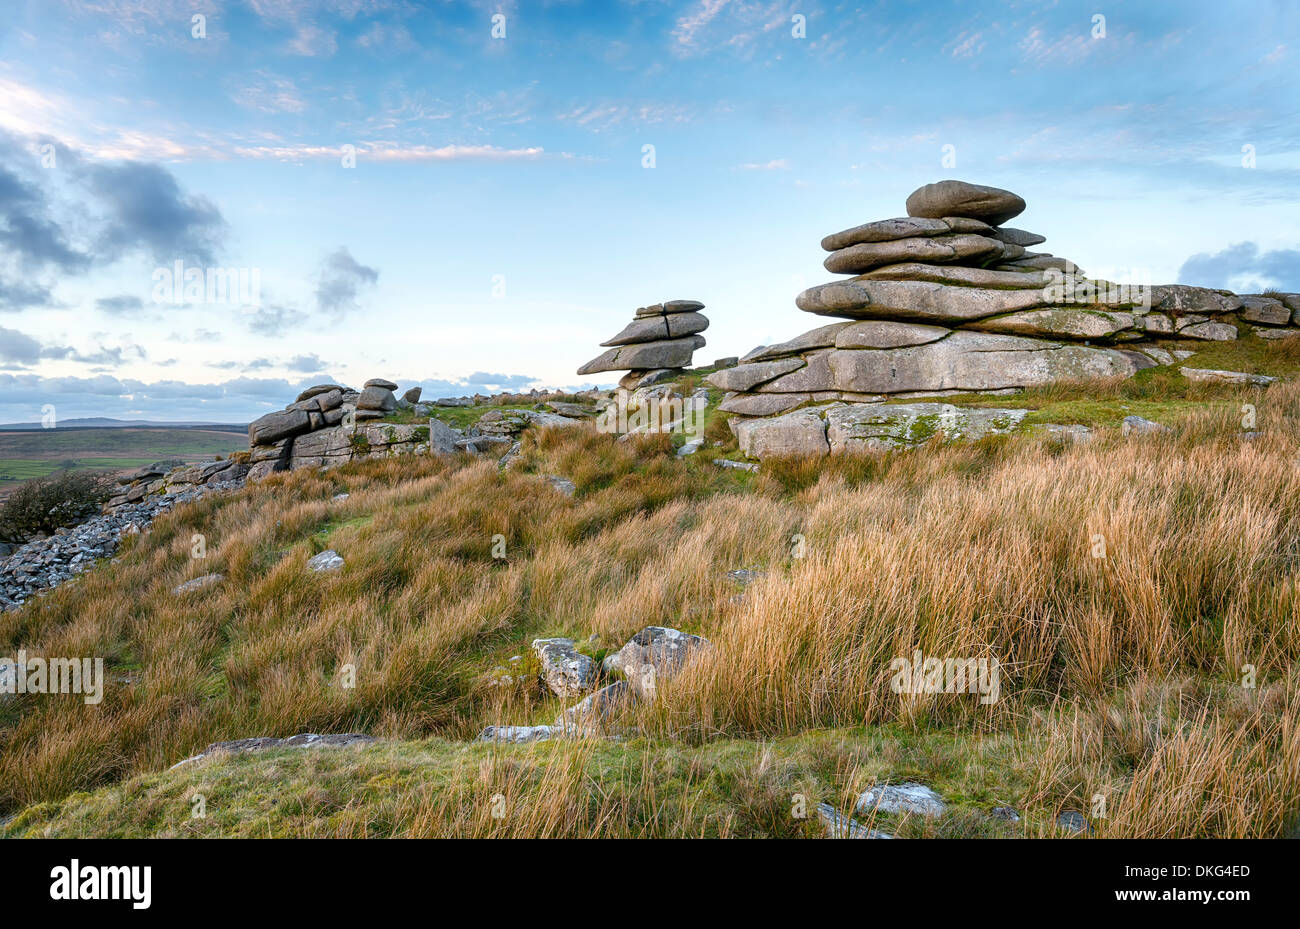 A granite tor at Stowes Hill on Bodmin Moor in Cornwall - Stock Image